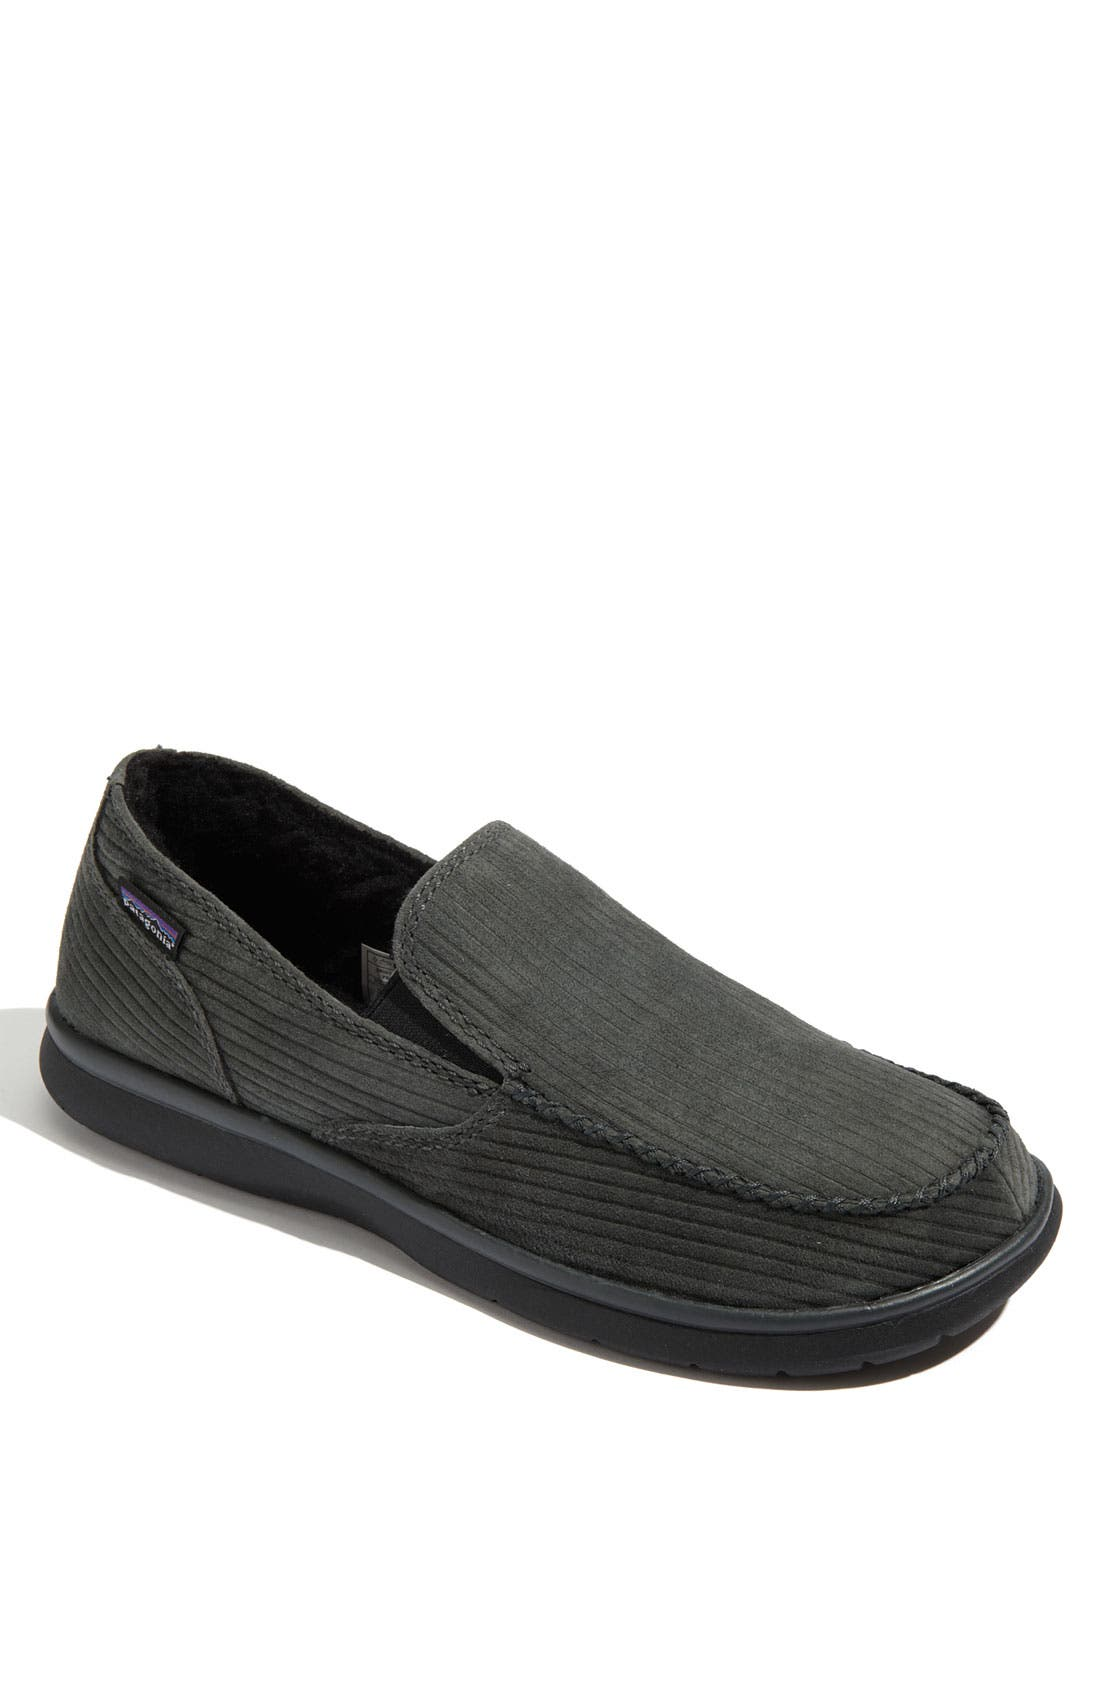 Main Image - Patagonia 'Maui Moc' Slip-On (Online Only)